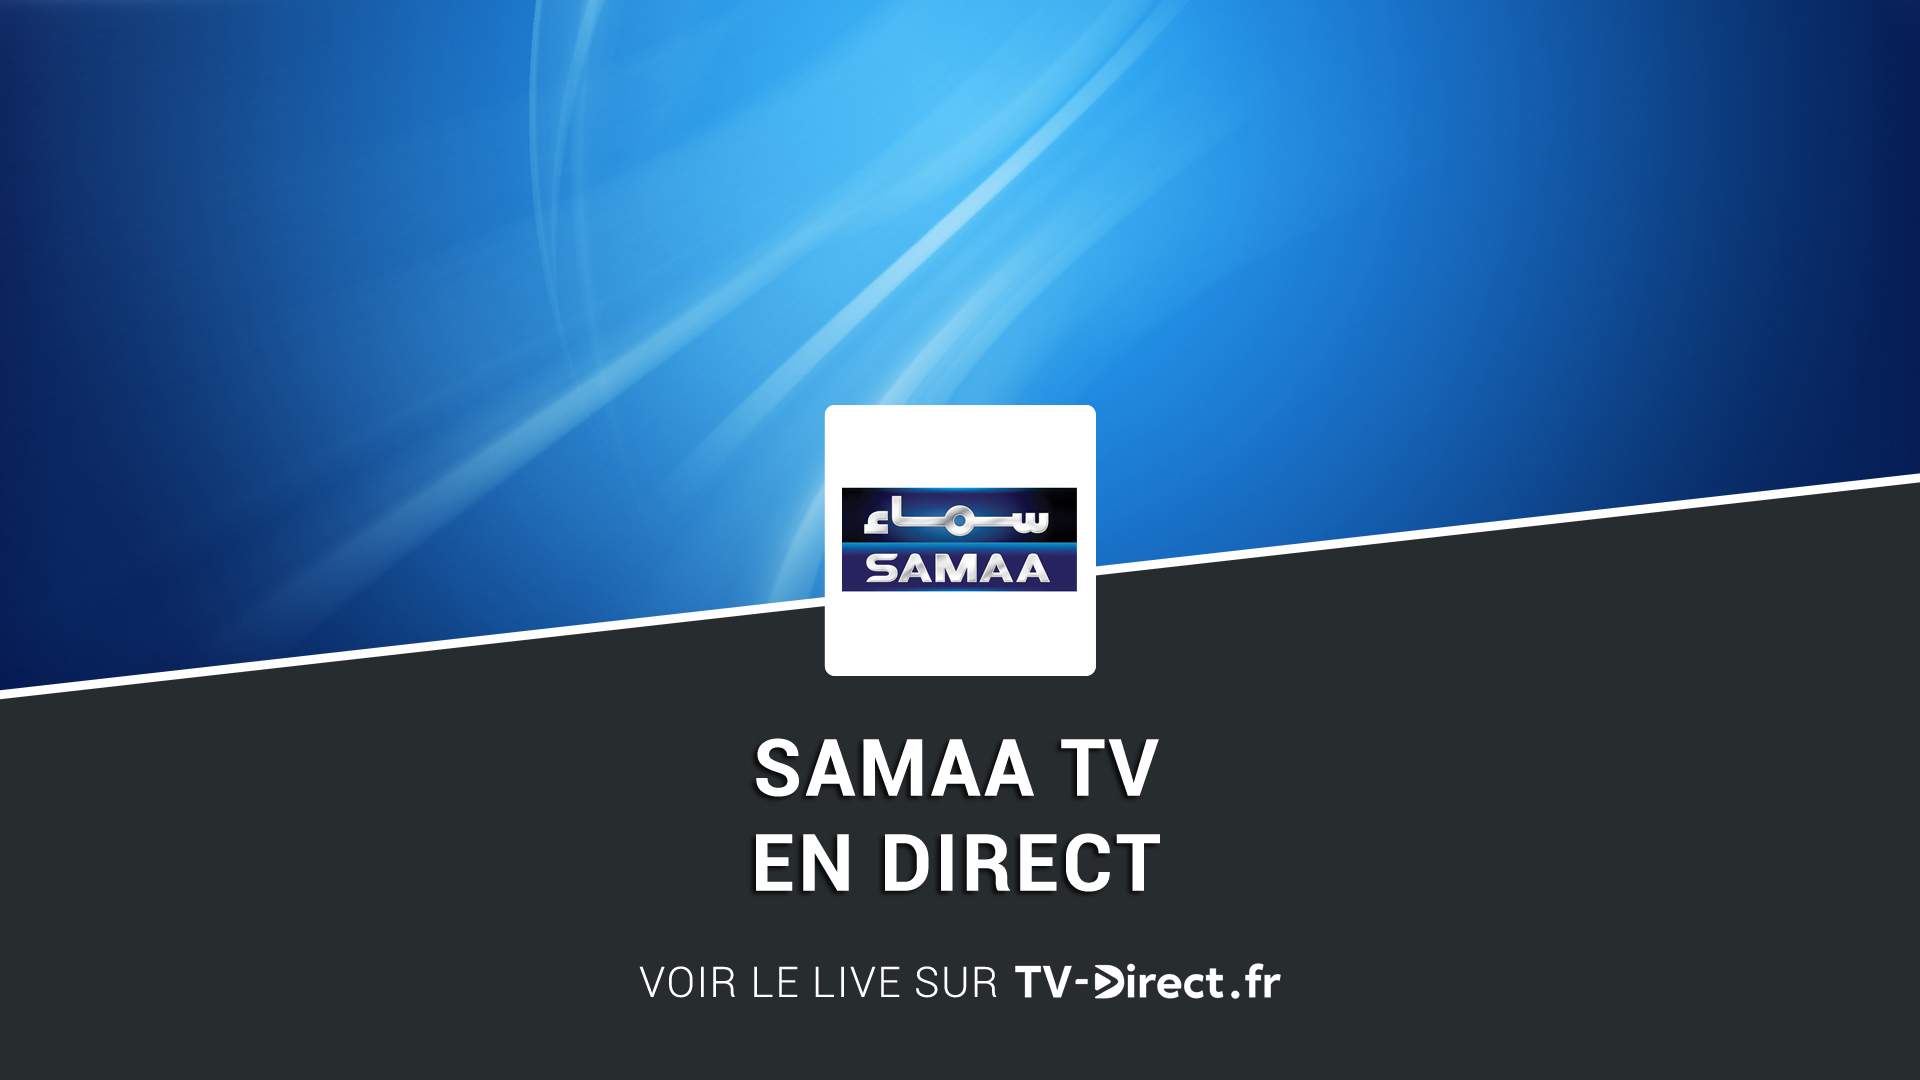 News: SAMAA TV – Design